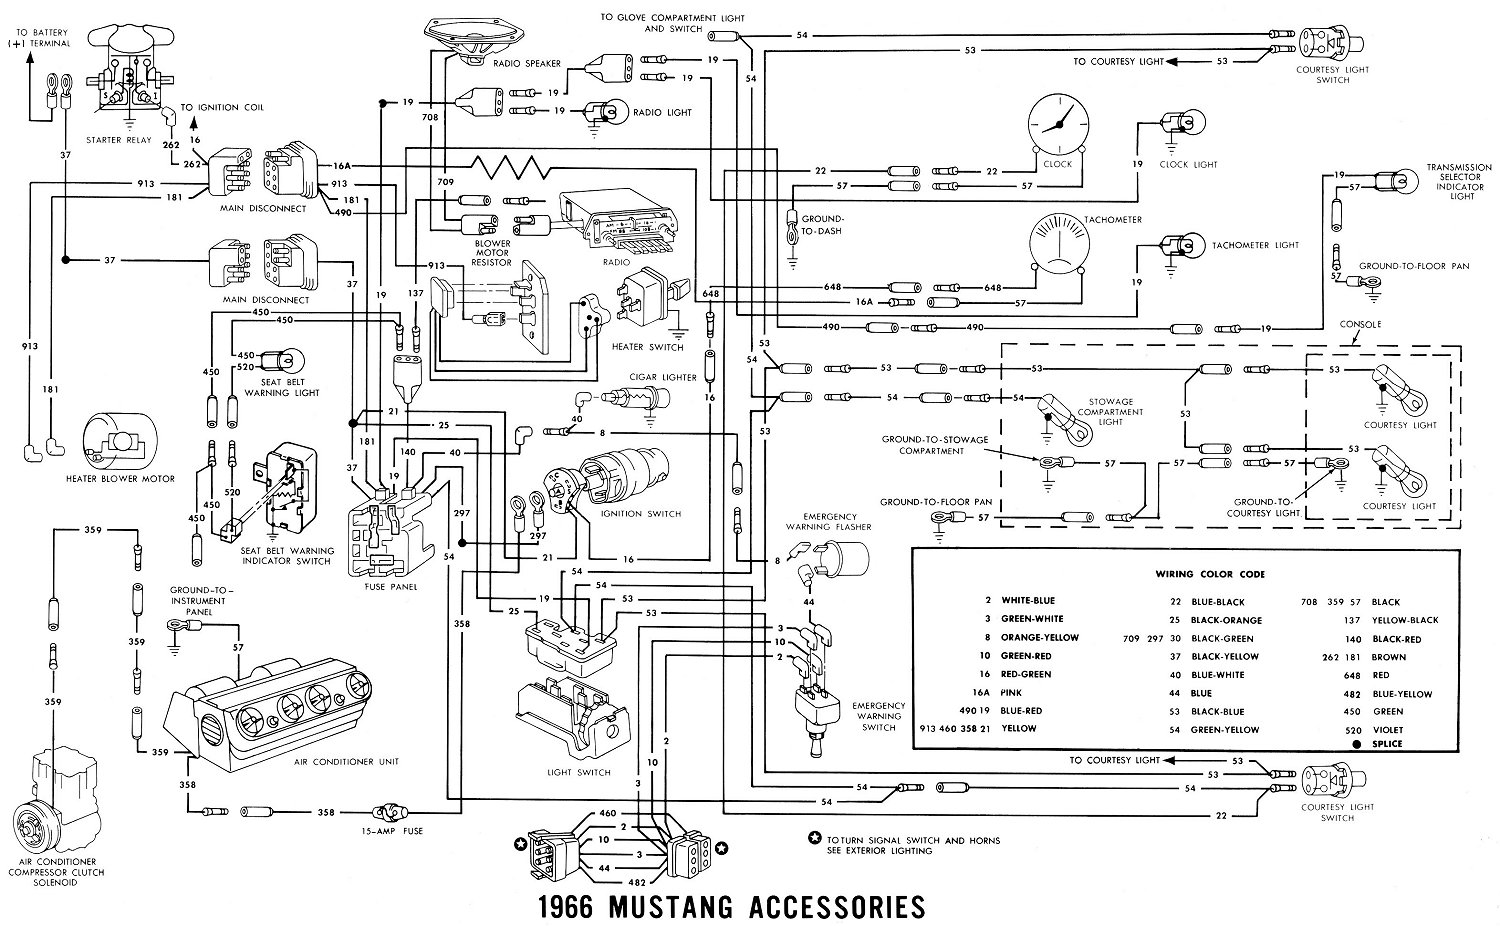 1981 Mustang Wiring Diagram - wiring diagrams schematics